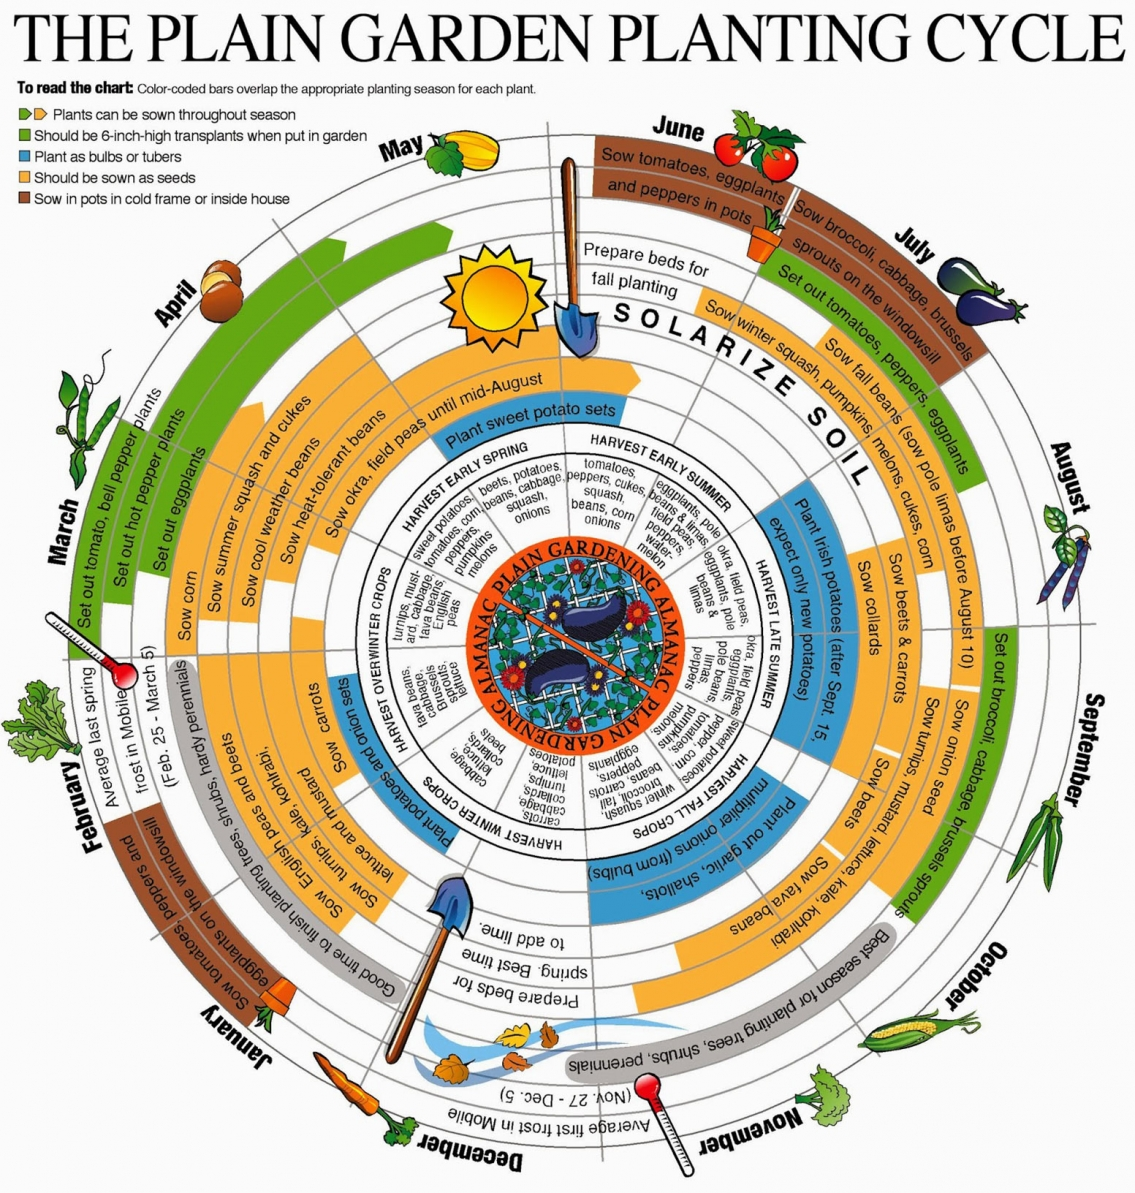 The Plain Garden Planting Cycle Infographic